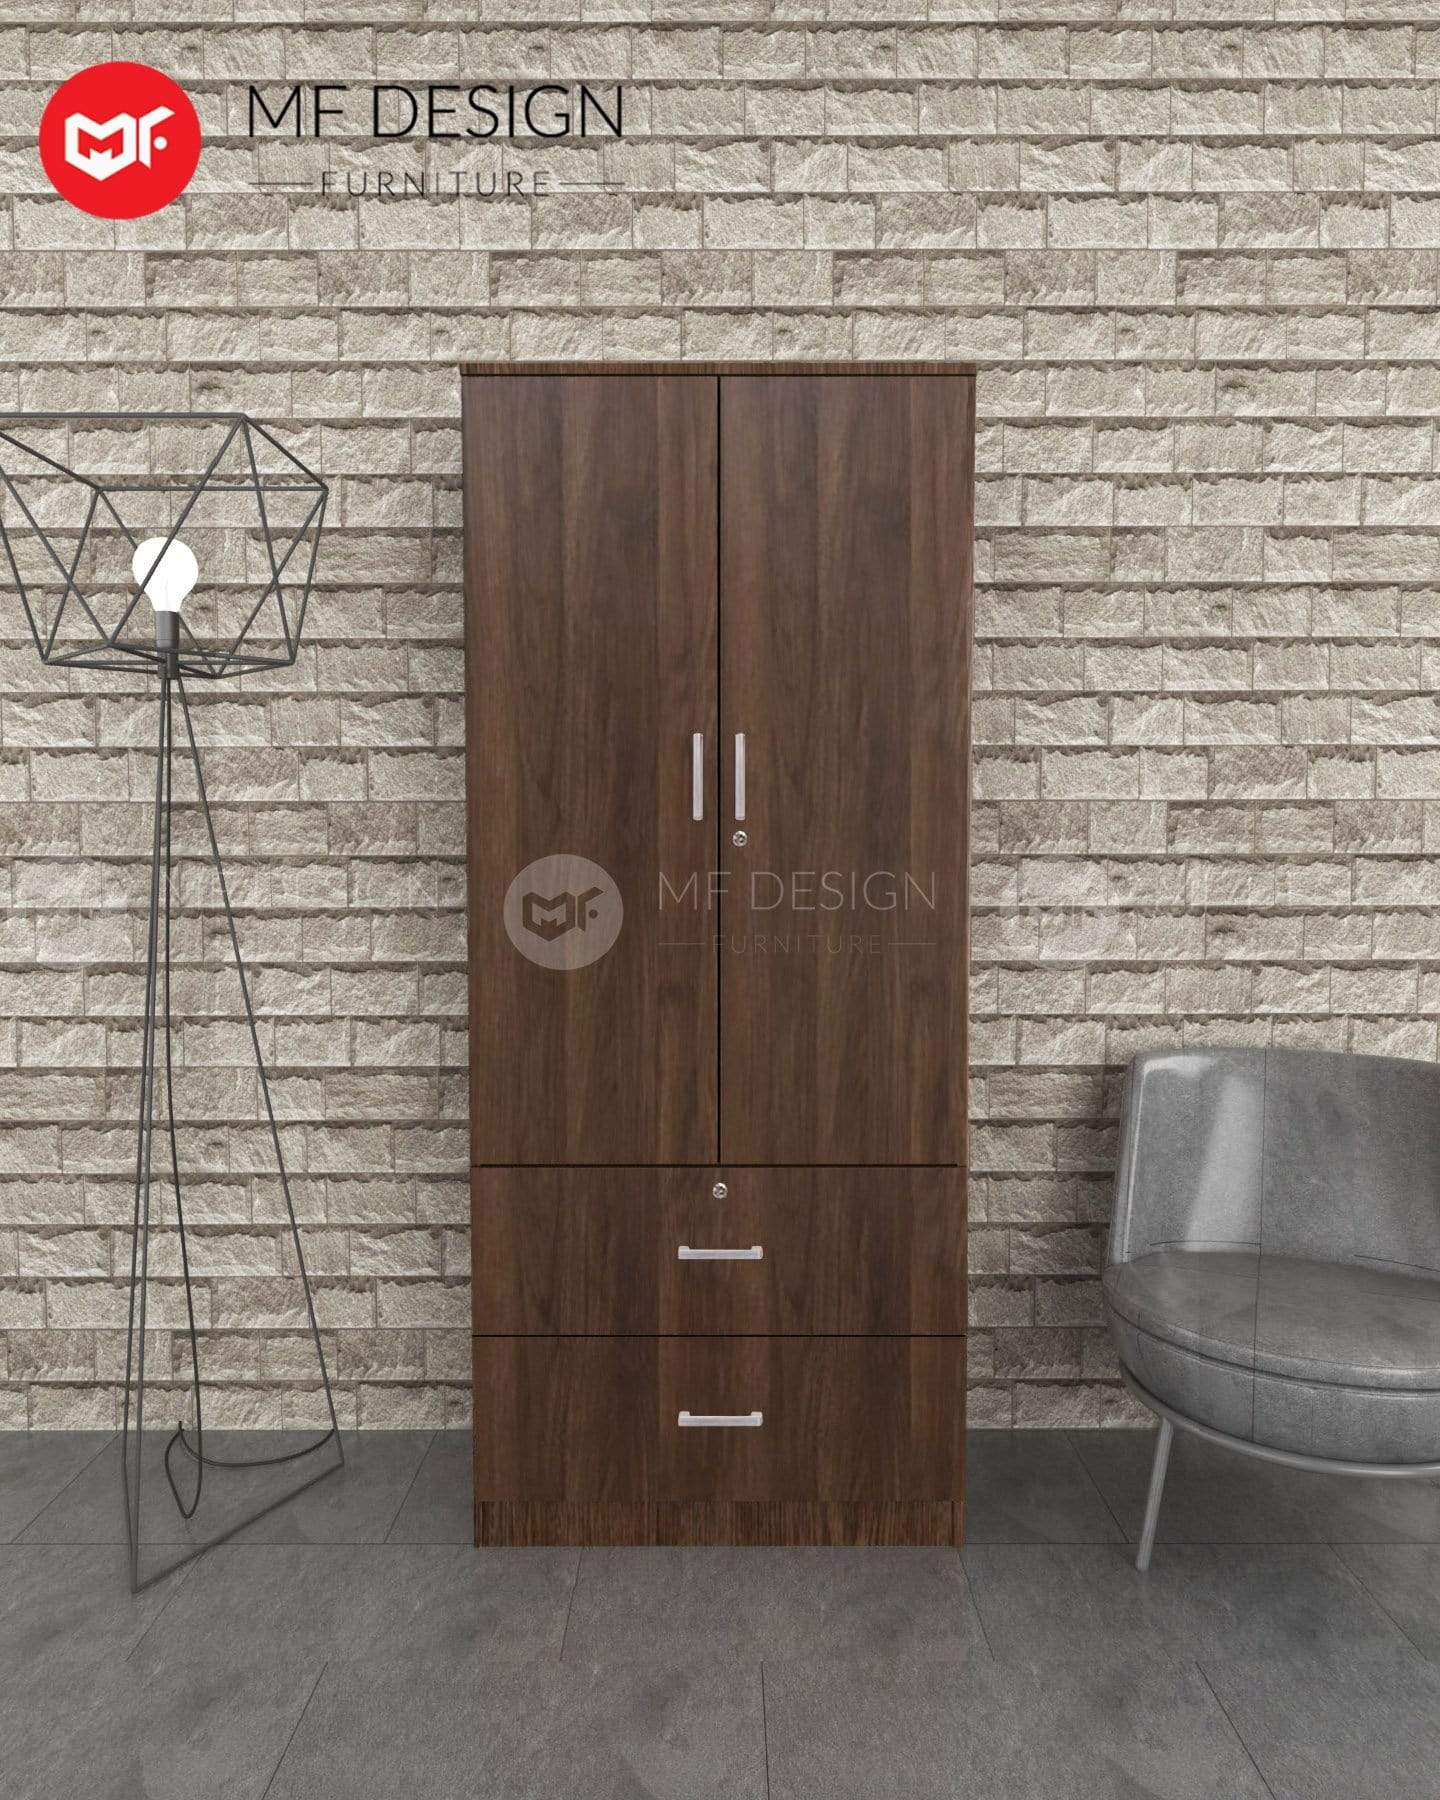 52 wardrobe MF DESIGN DORI 2 DOOR WARDROBE (ALMARI BAJU KAYU)(BROWN)